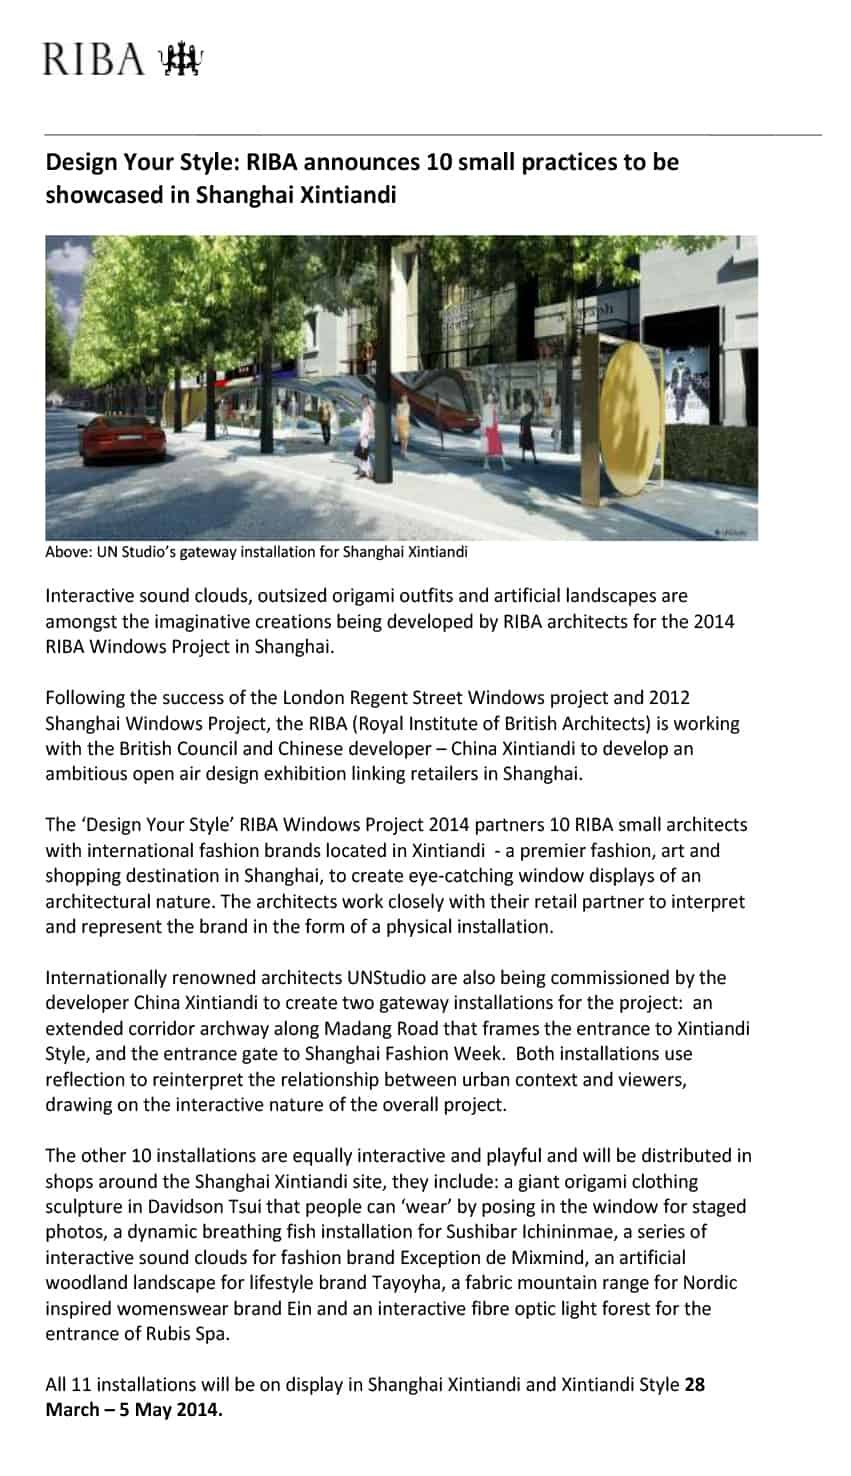 The regent street windows project 2012 - The Riba Windows Project At Shanghai Xintiandi Partners Riba Architects With International Fashion Brands Located In Xintiandi To Create A Huge Public